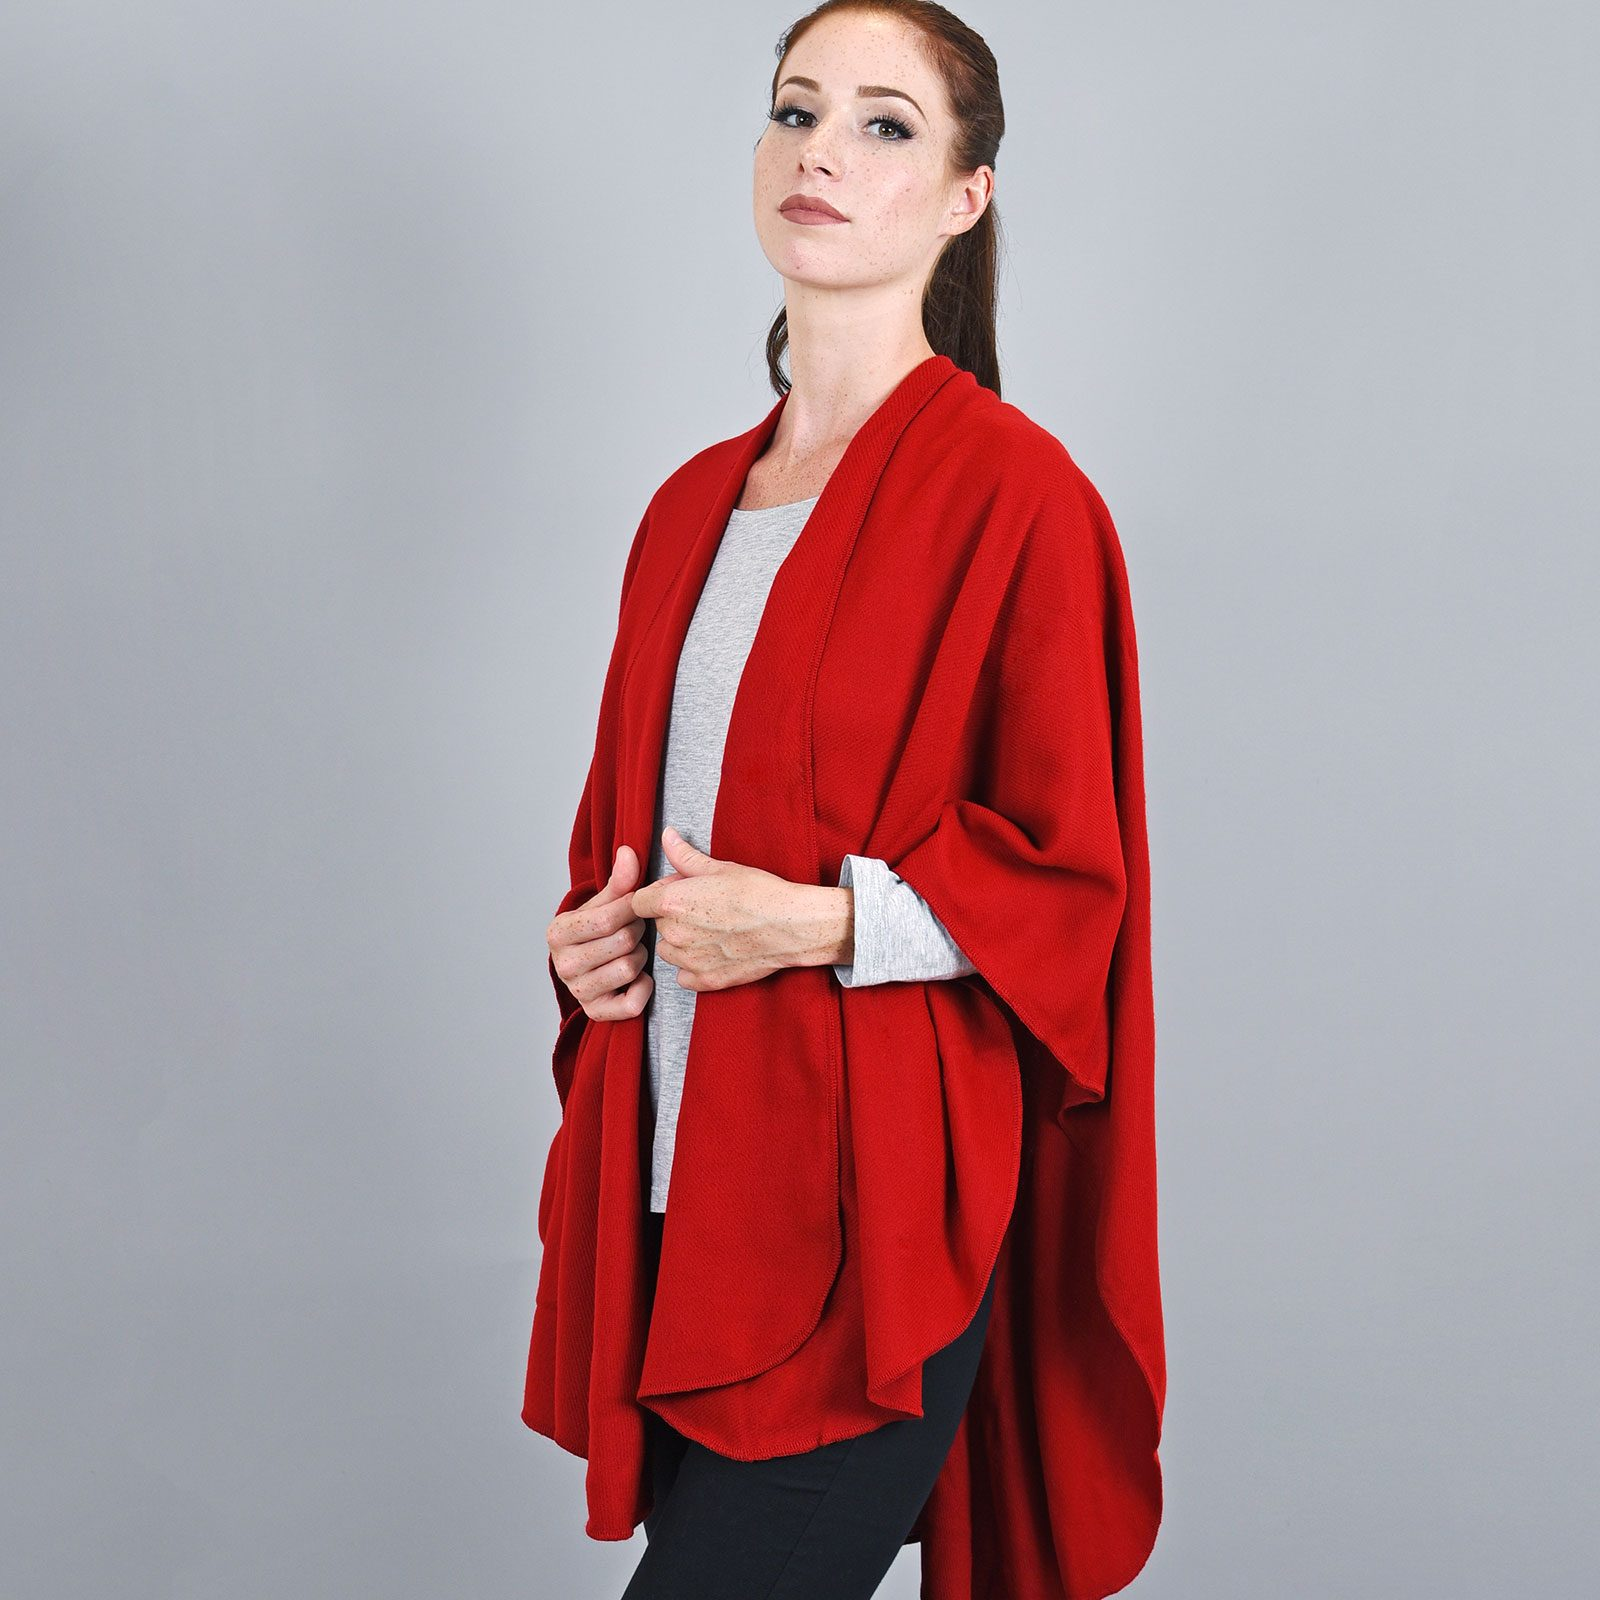 http://lookbook.allee-du-foulard.fr/wp-content/uploads/2018/11/AT-03257-VF16-poncho-rond-fabrique-en-france-rouge-1600x1600.jpg